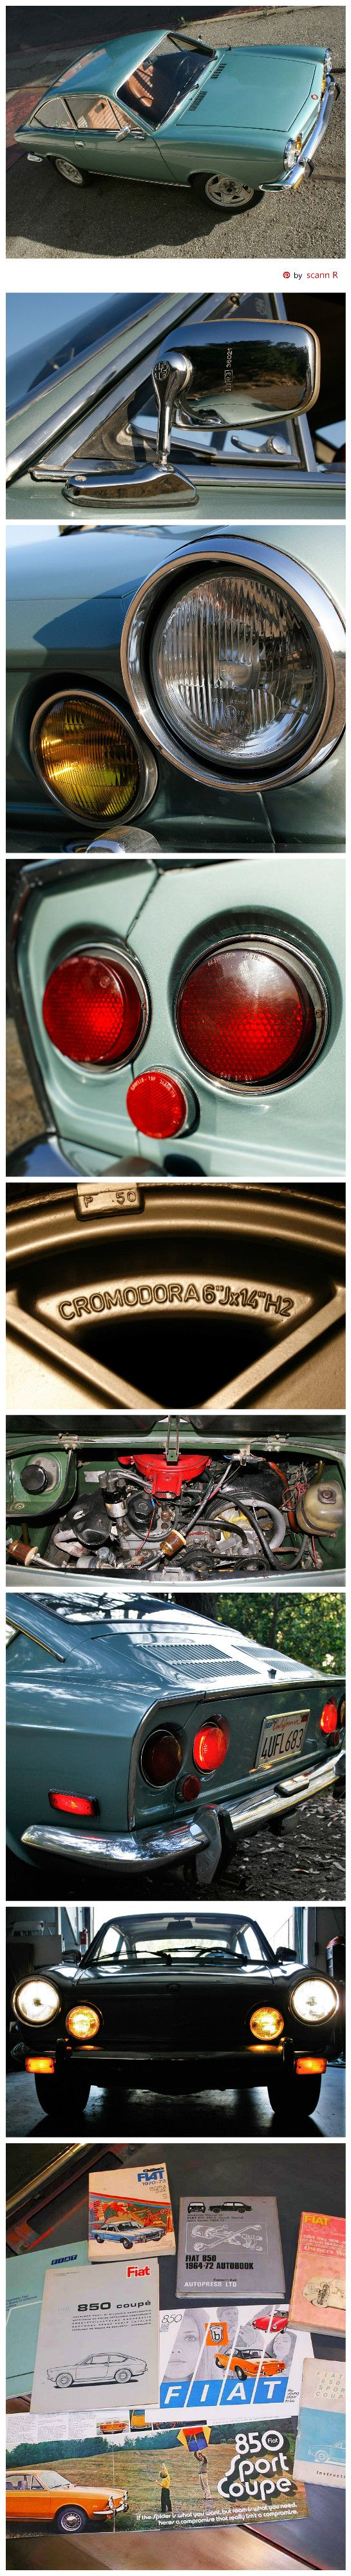 1971 Fiat 850 Sport Coupe (Series II) details | Pin made by scann R